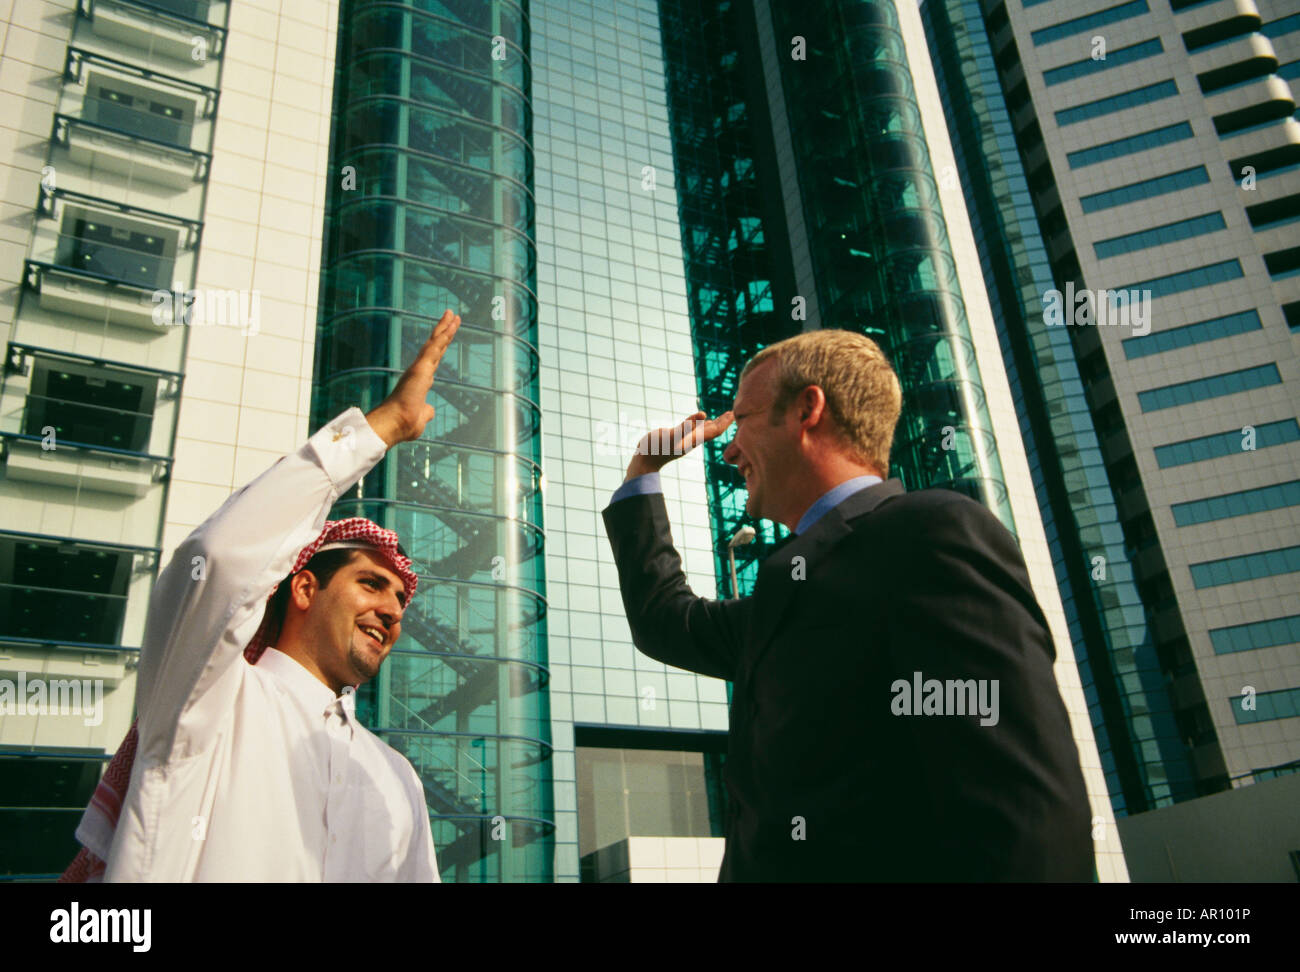 Arab men greeting other stock photos arab men greeting other stock an arab and a businessman greeting each other happily near a commercial complex stock m4hsunfo